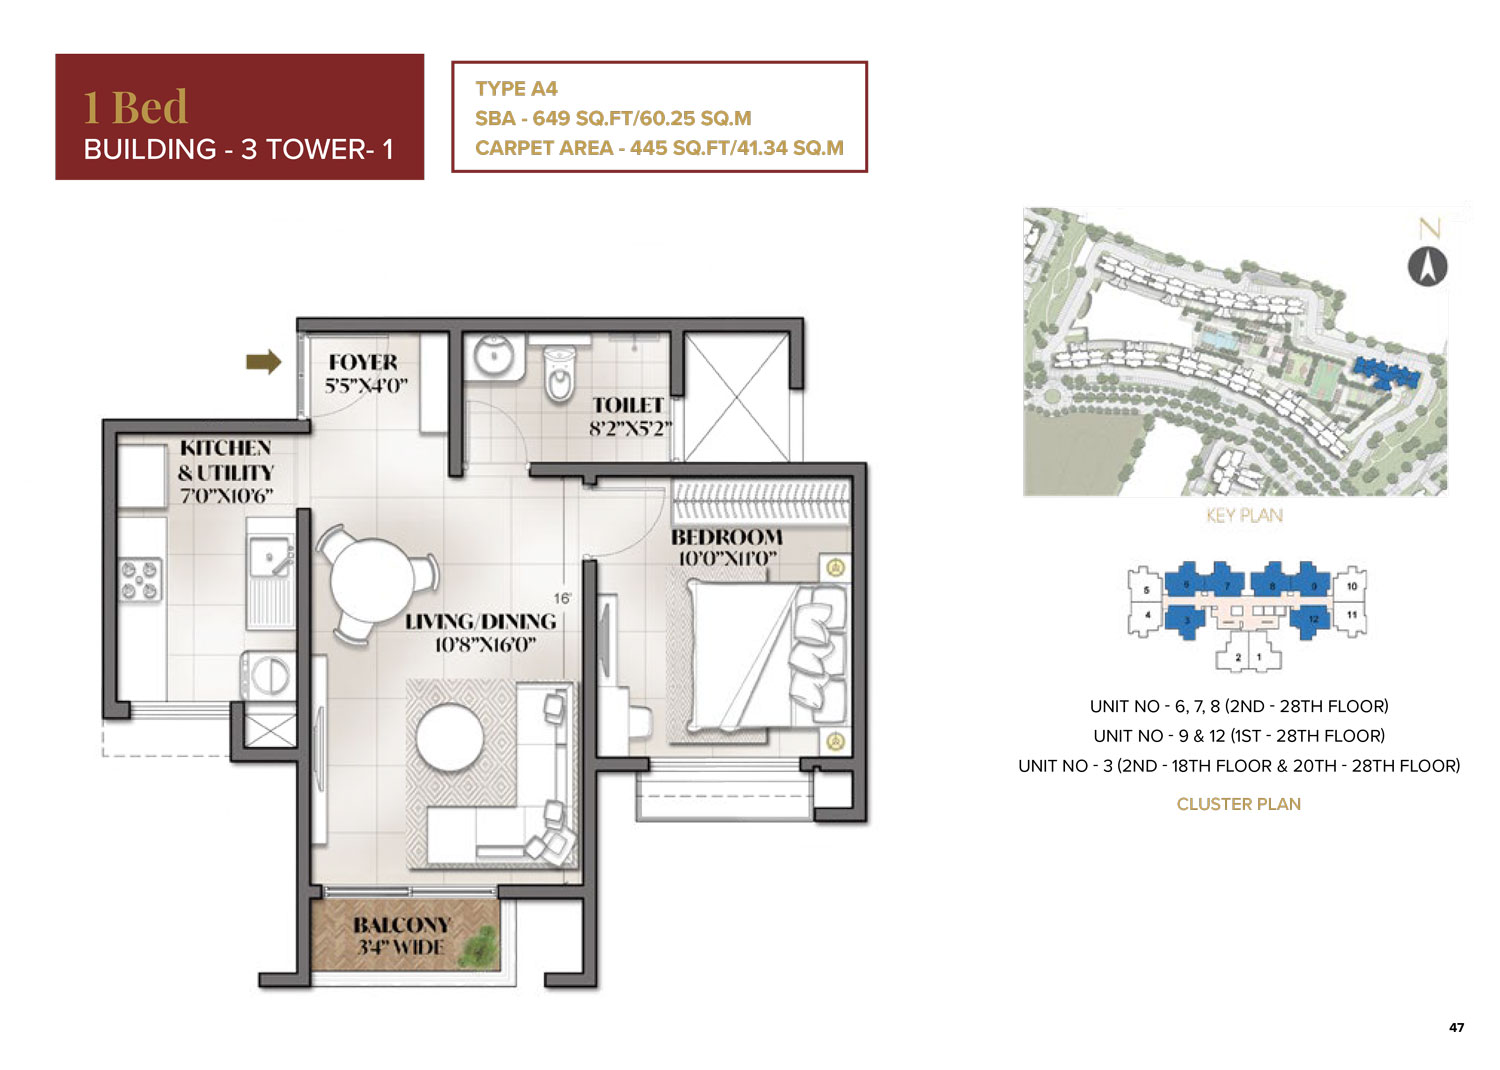 Type A4 - 649 Sq Ft